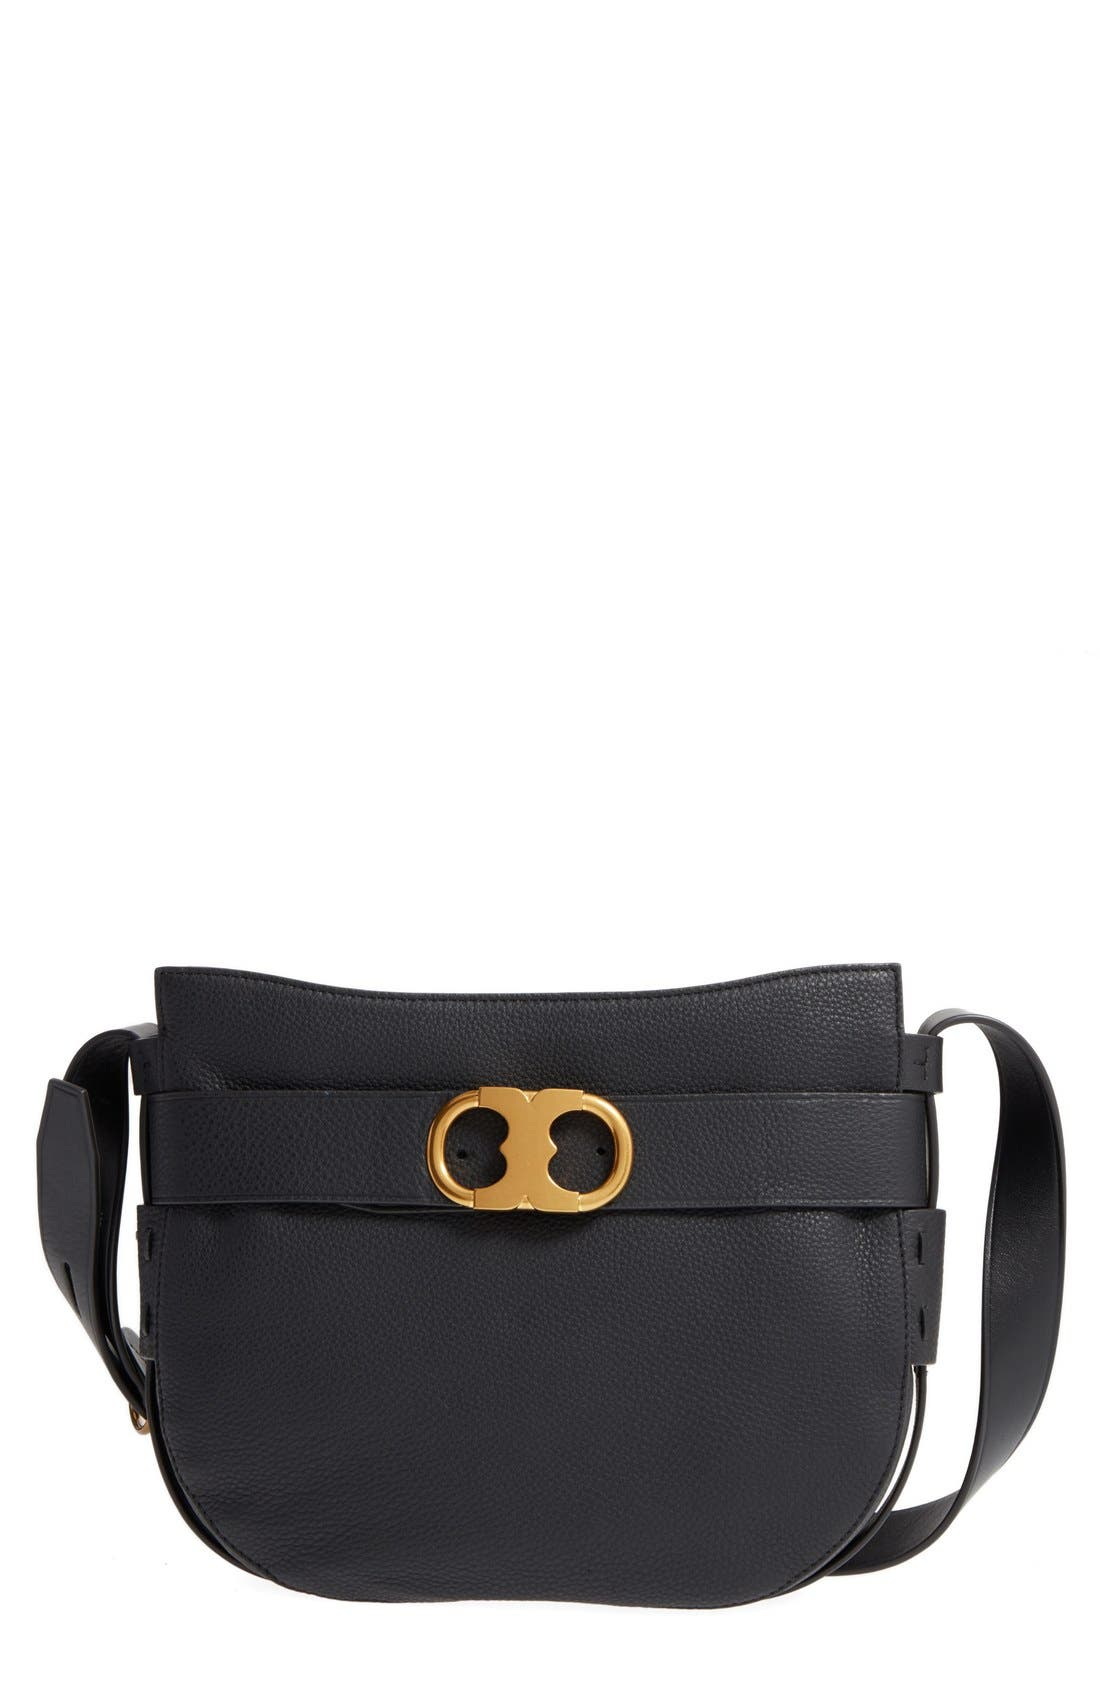 Tory Burch Small Gemini Belted Leather Hobo